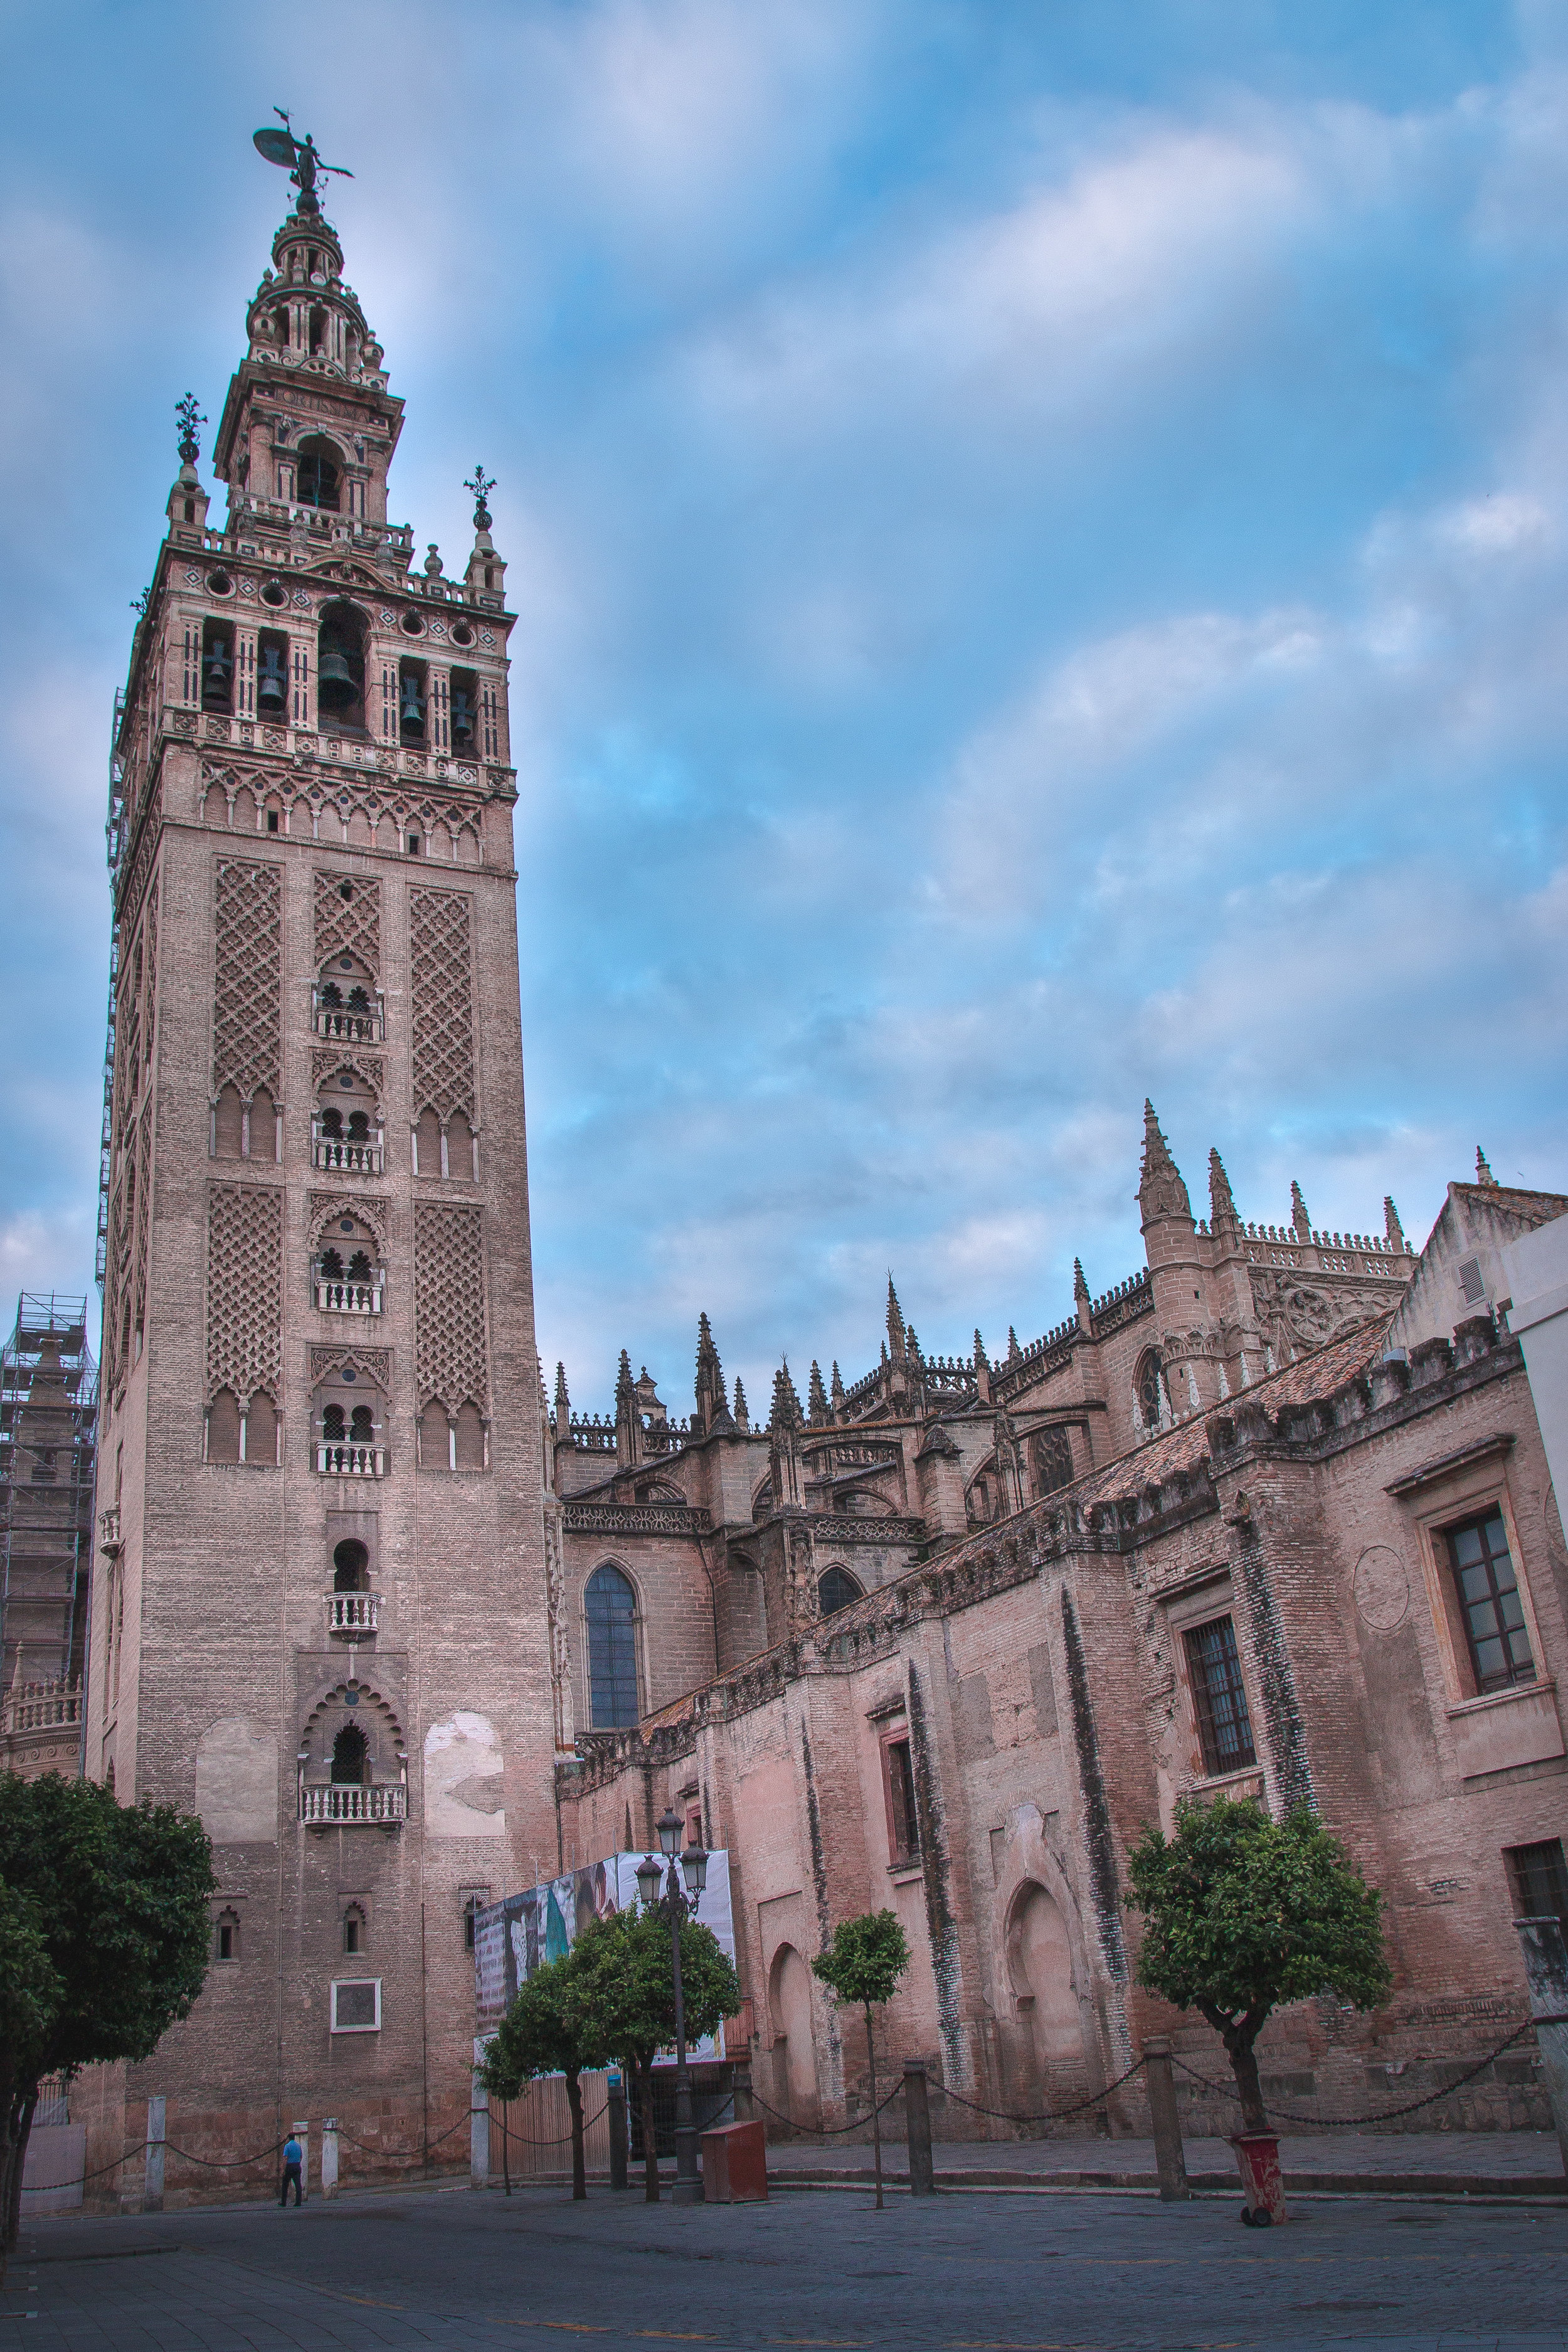 Must-see-places-in-seville-the-cathedral-giralda.jpg